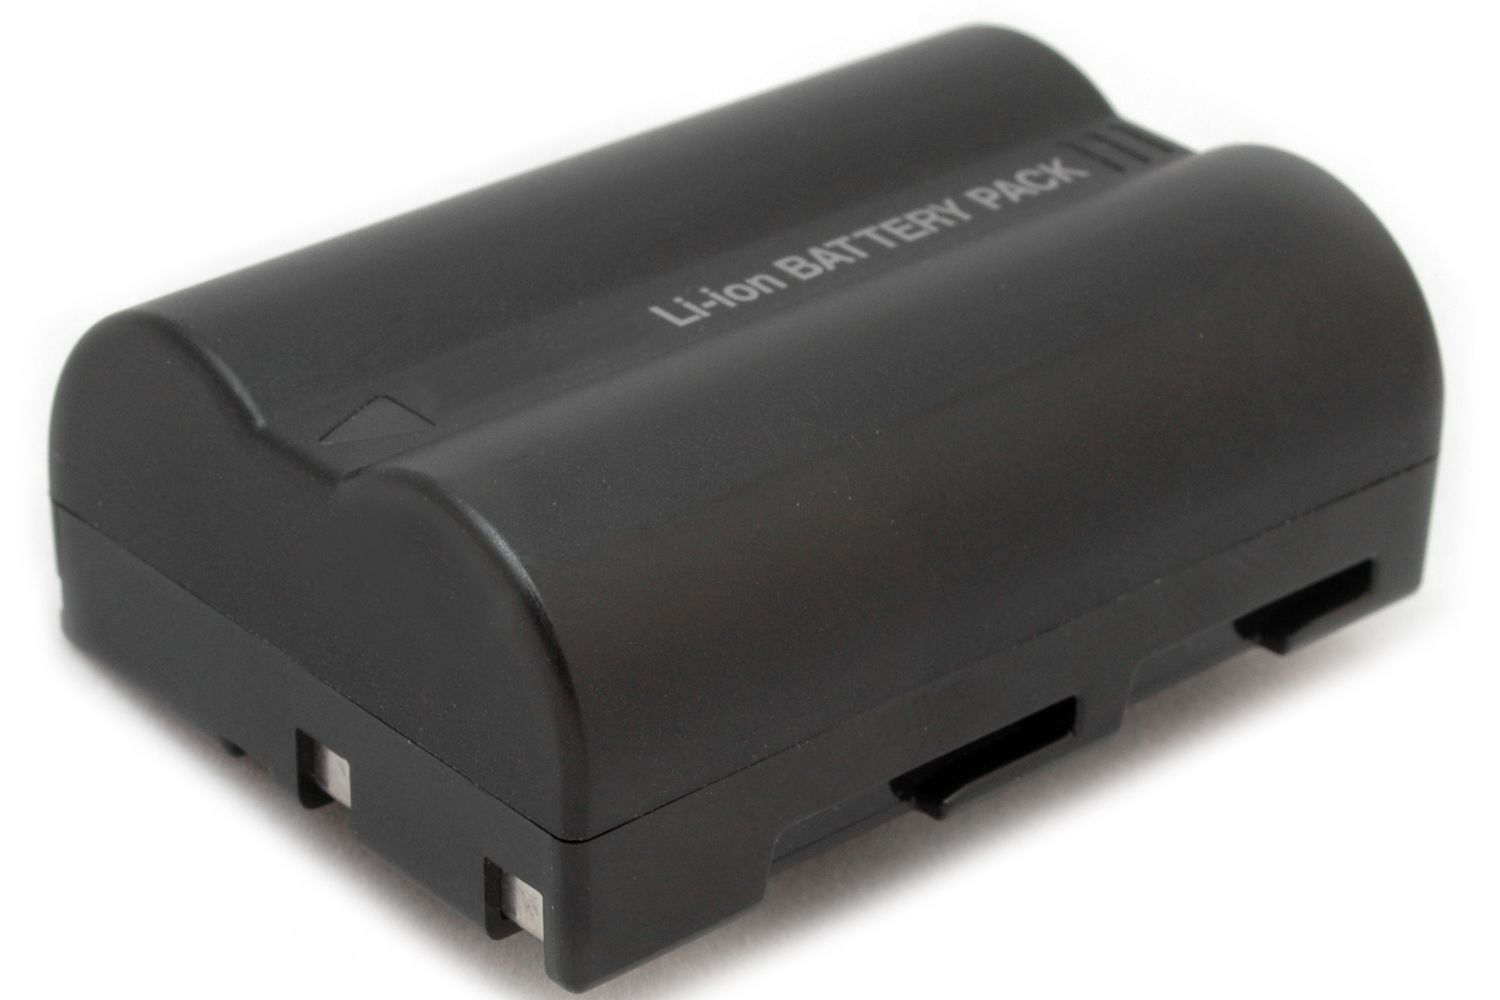 A rechargeable camera battery.